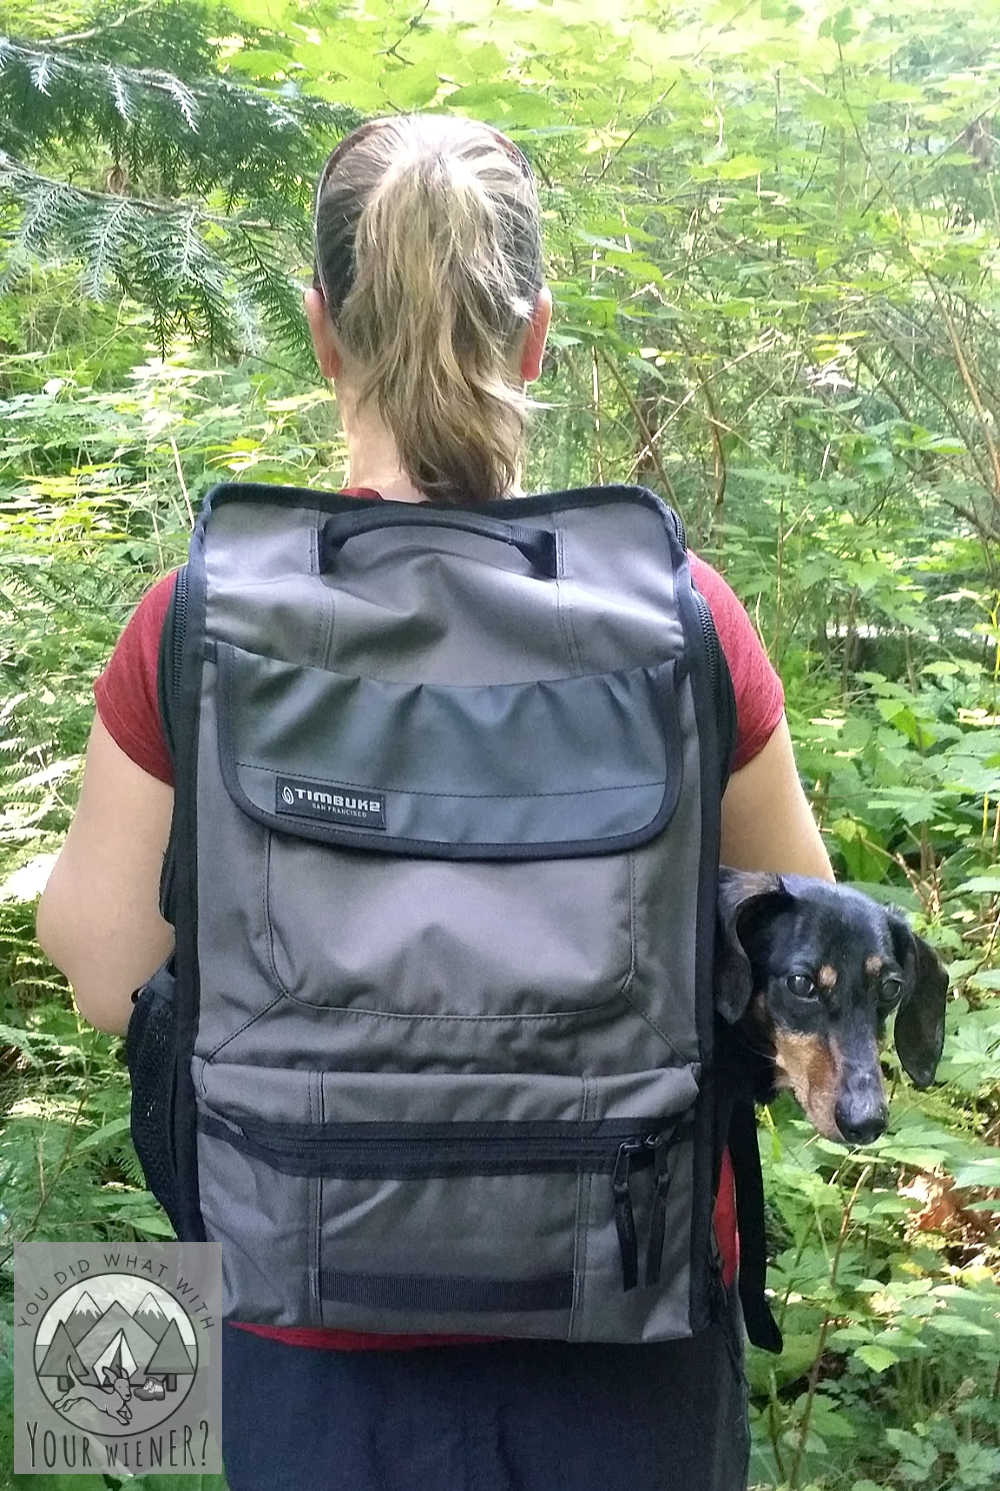 Backpacks For Carrying Dachshunds Dog Backpack Carrier Backpacks Baby Dachshund